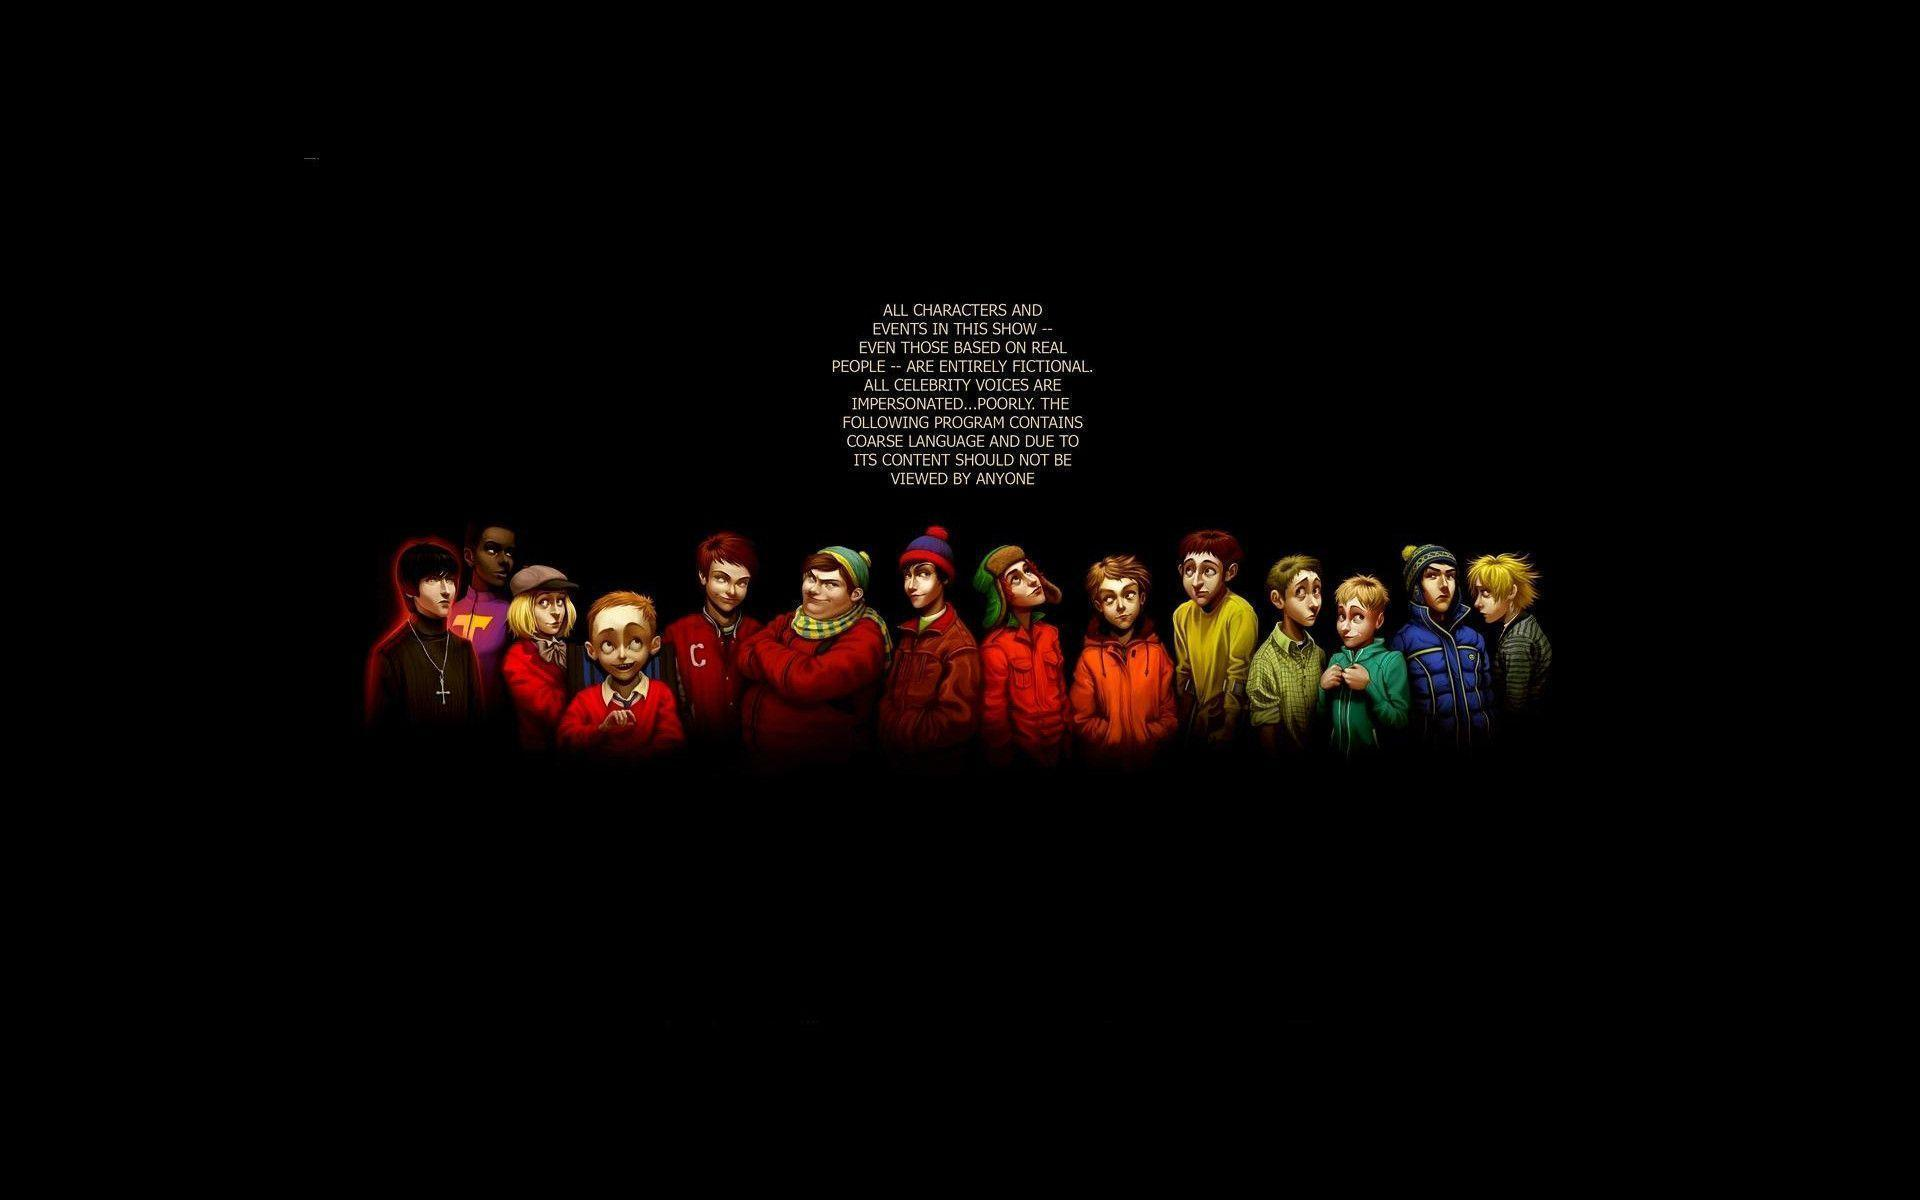 Hd Wallpapers Joker Quotes South Park Wallpapers Wallpaper Cave